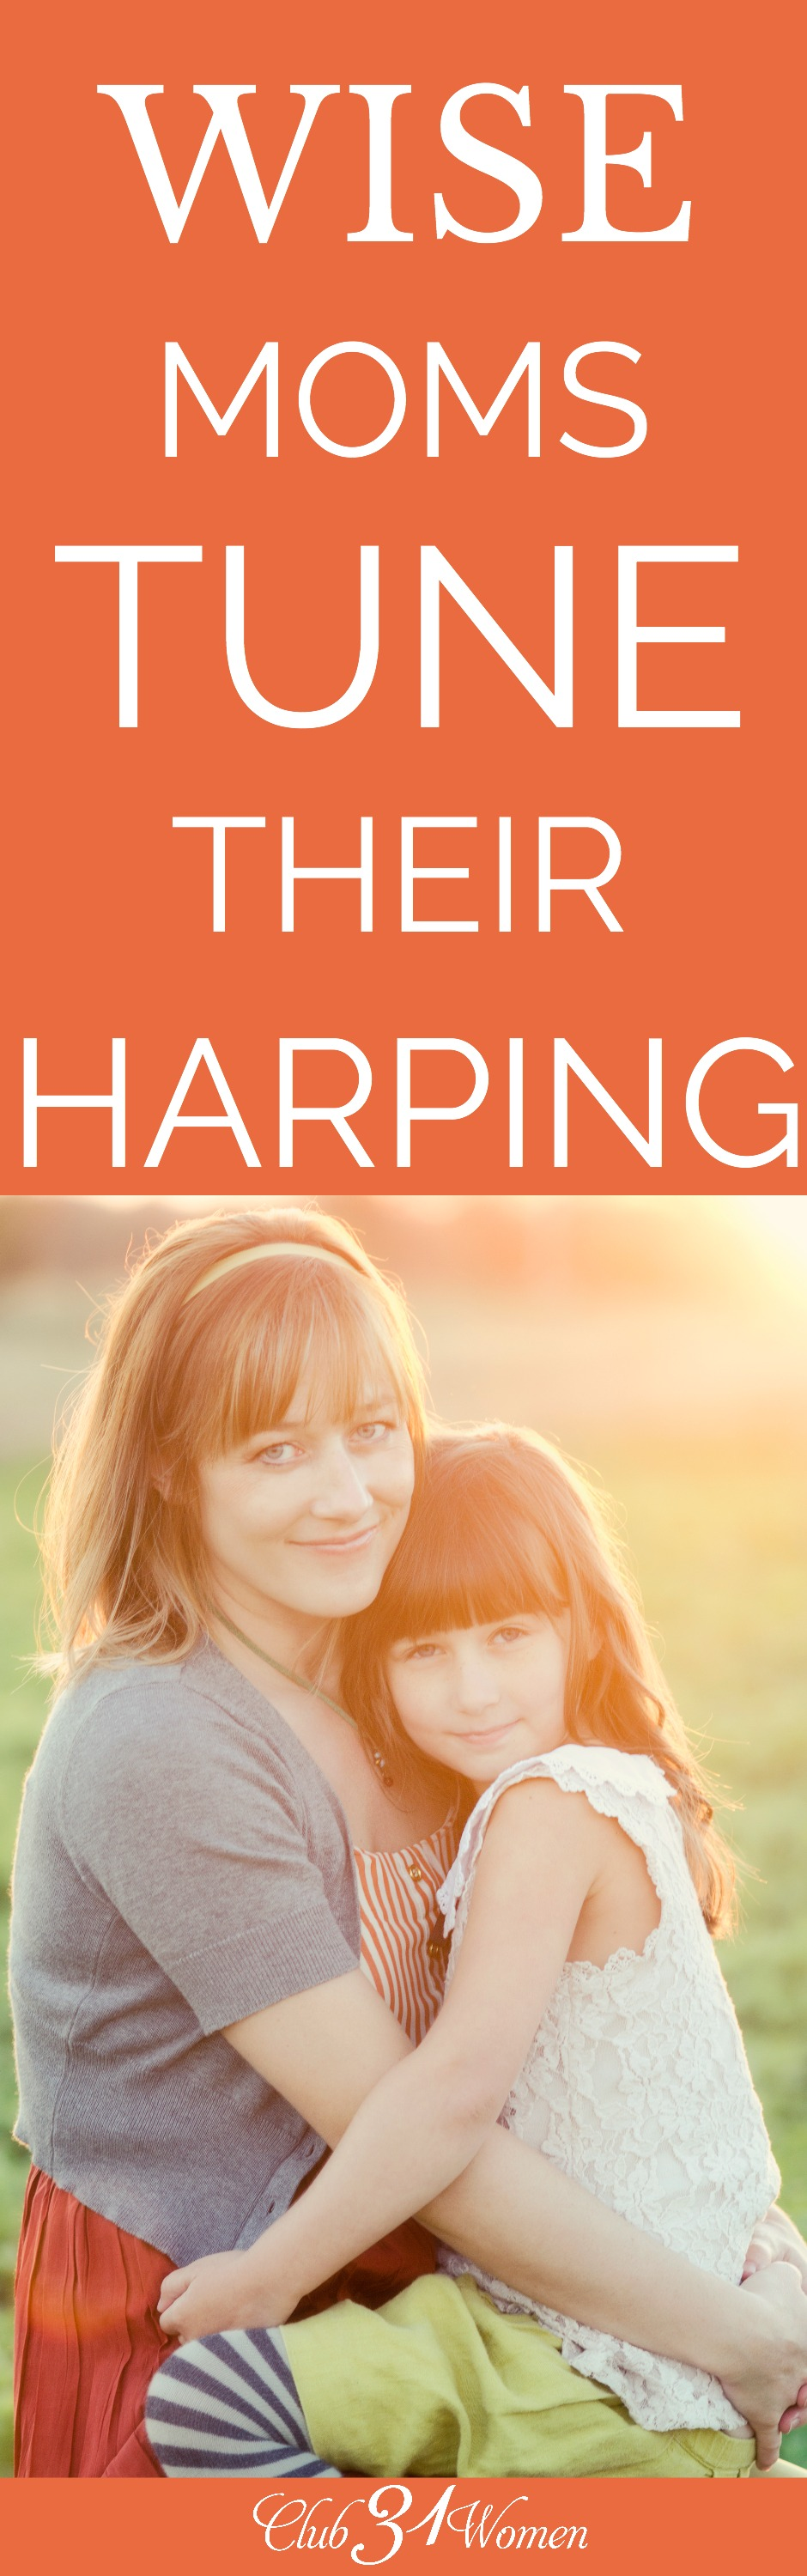 Do you harp on your children? What if some harping is actually considered good and beneficial for our children? Here's how to tell the difference! via @Club31Women